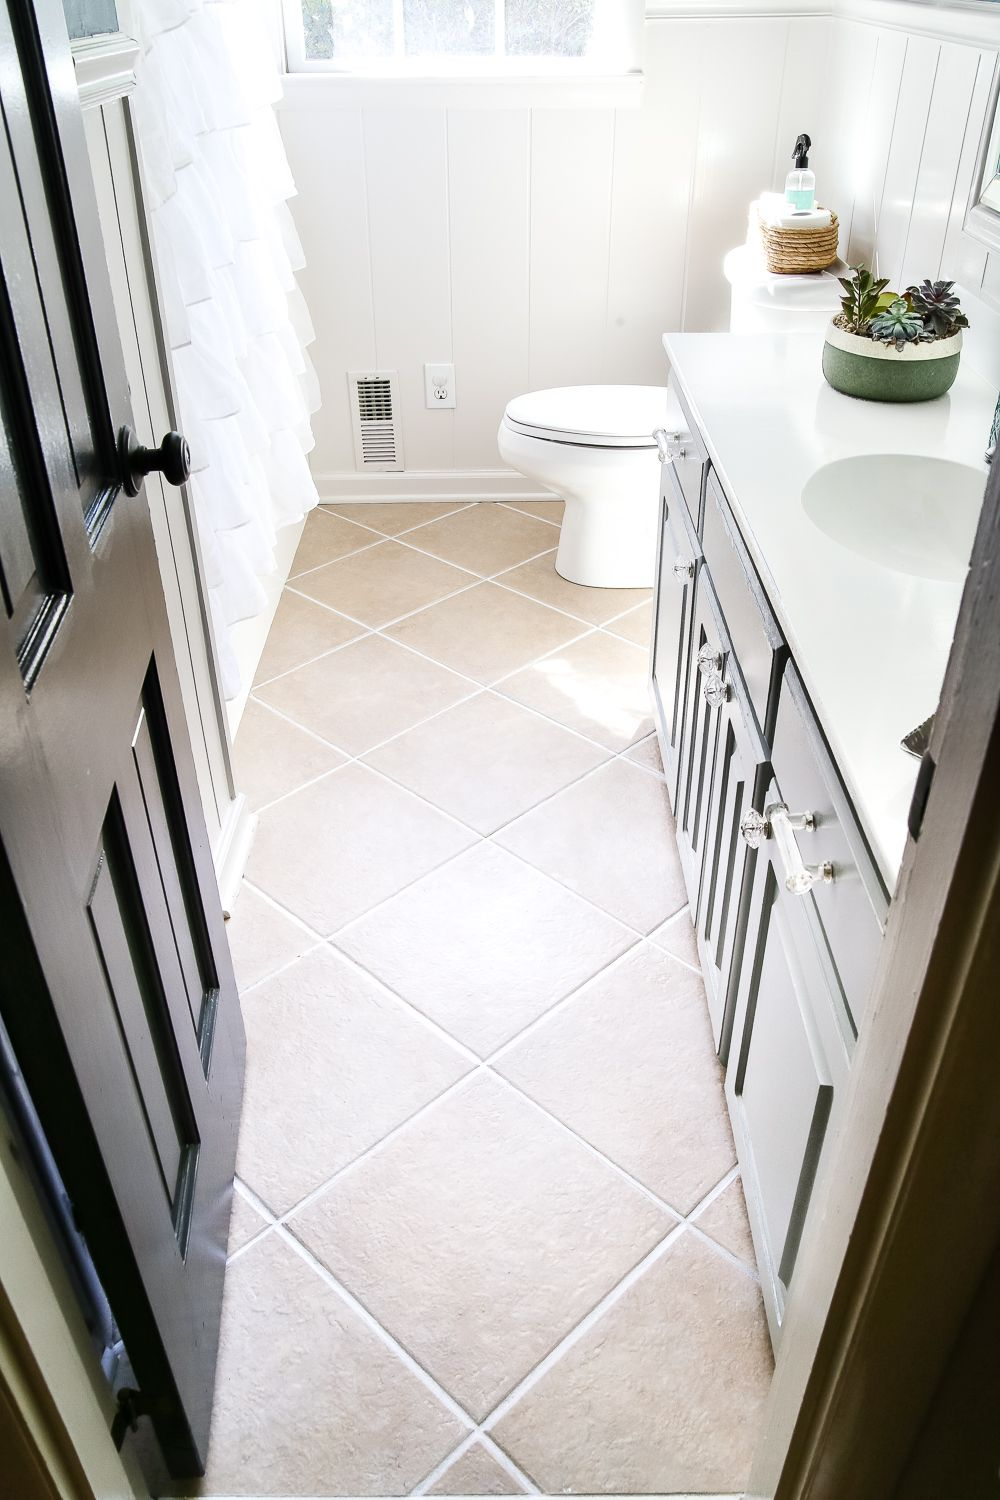 Prime Painted Tile Grout Refresh Bathrooms Tile Grout Home Interior And Landscaping Synyenasavecom